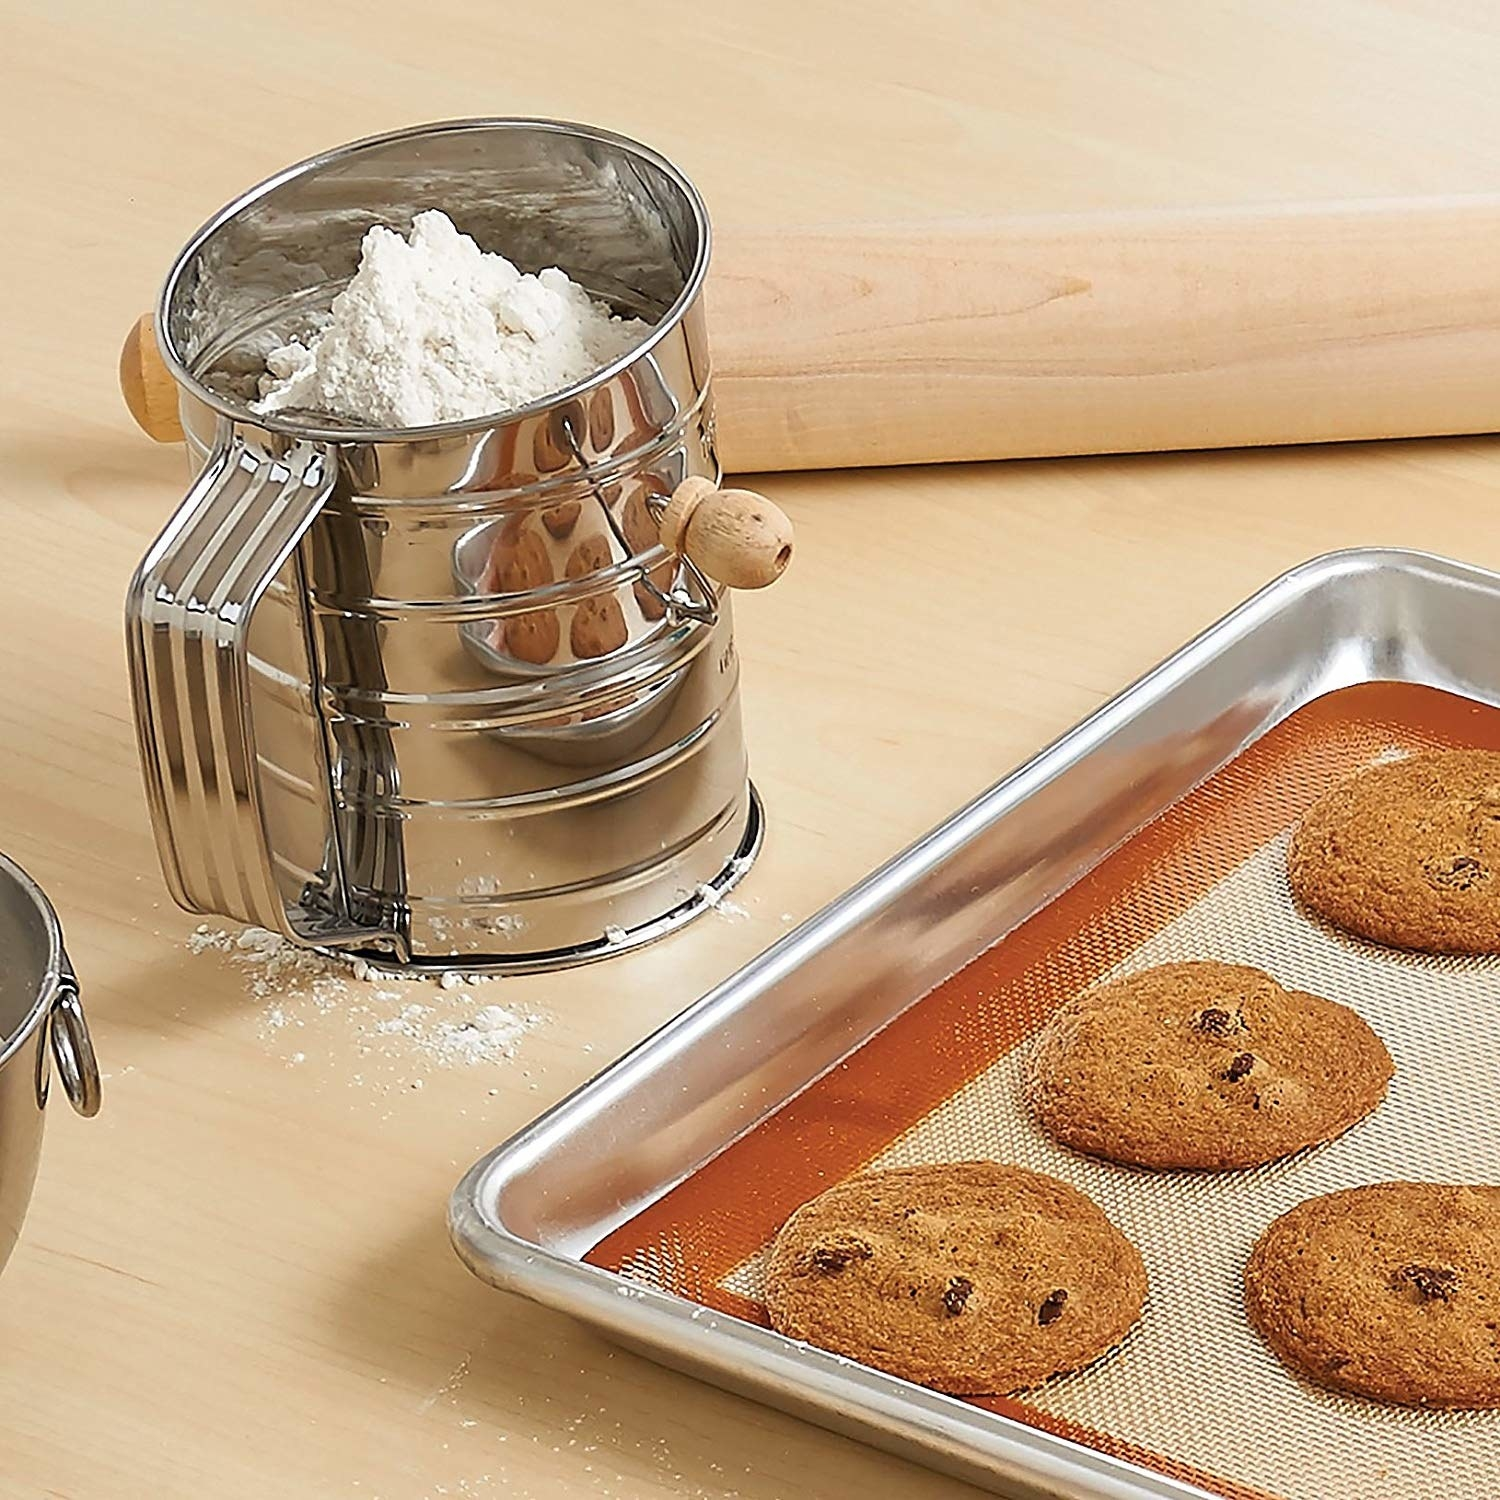 A metal sifter with flour next to a pan of cookies